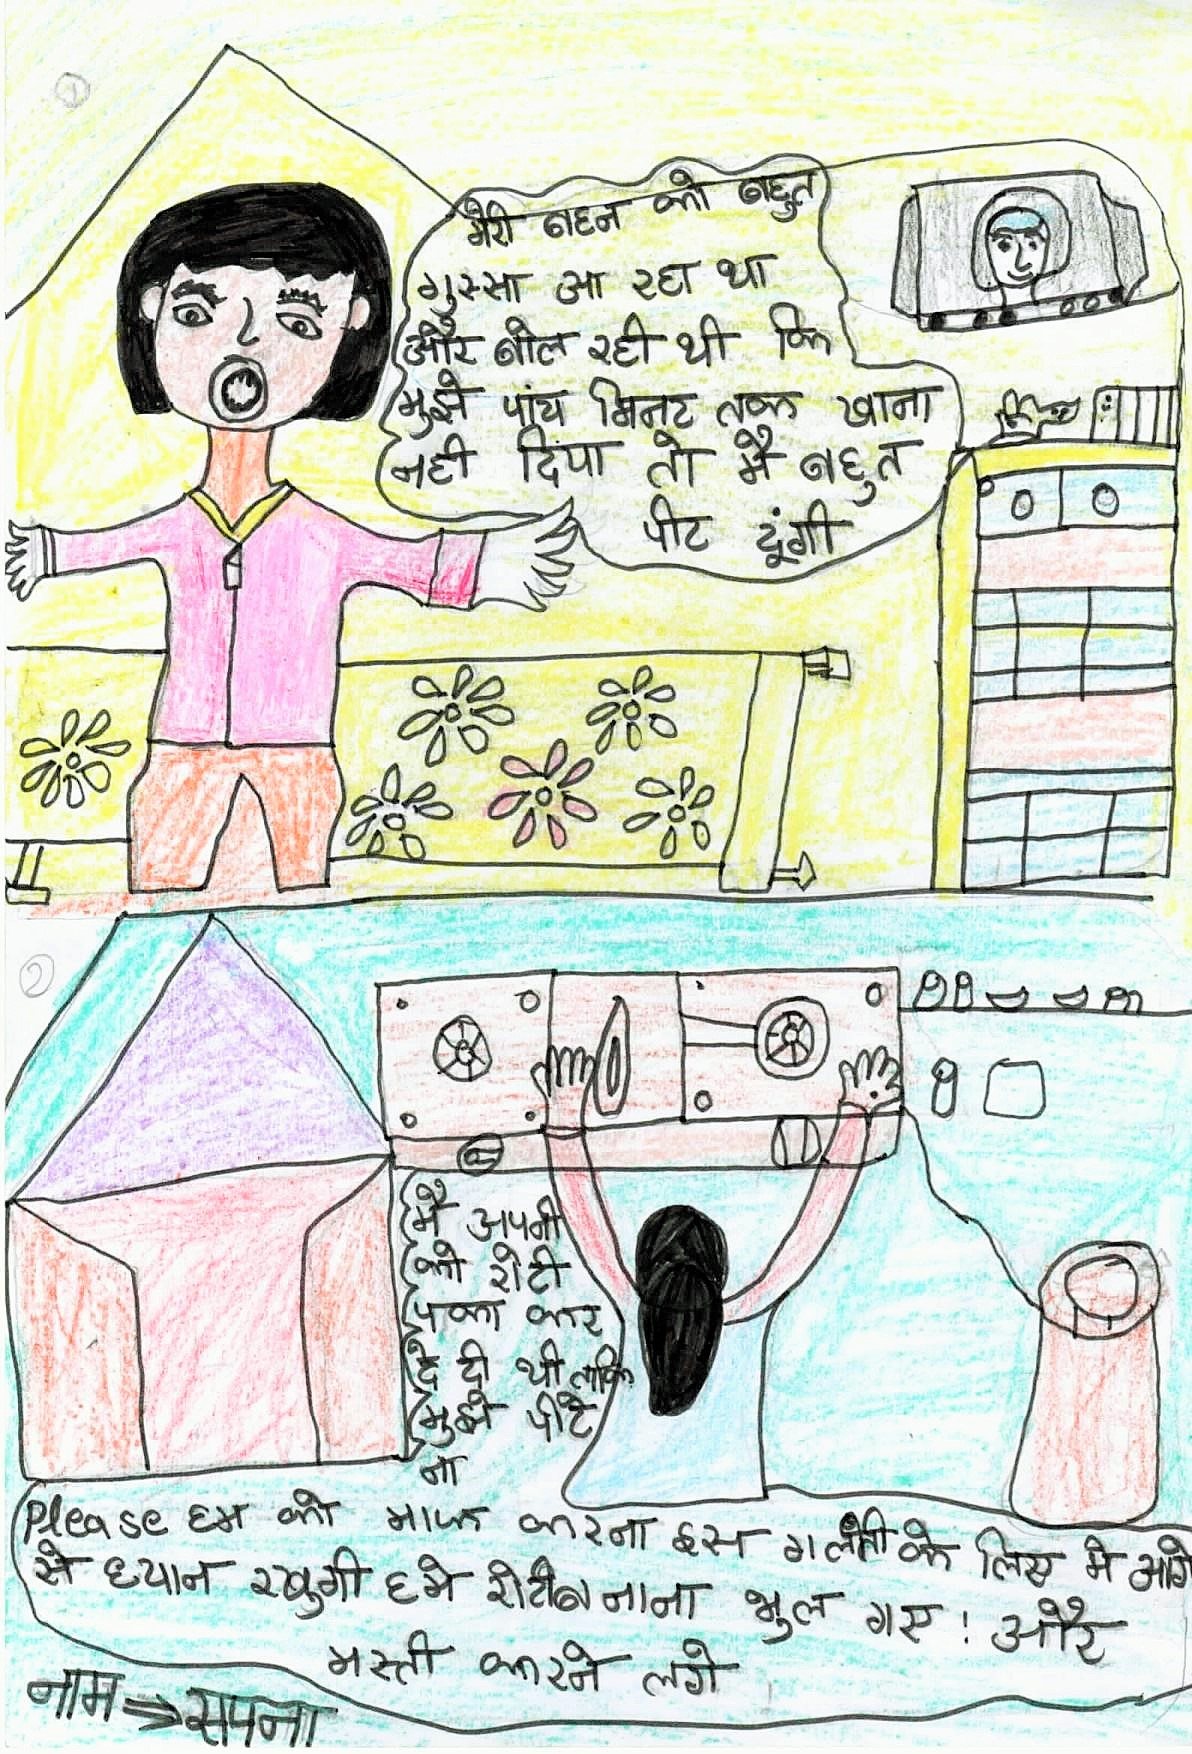 Dilshad_Garden_children_s_drawings_scanned-page-019.jpg